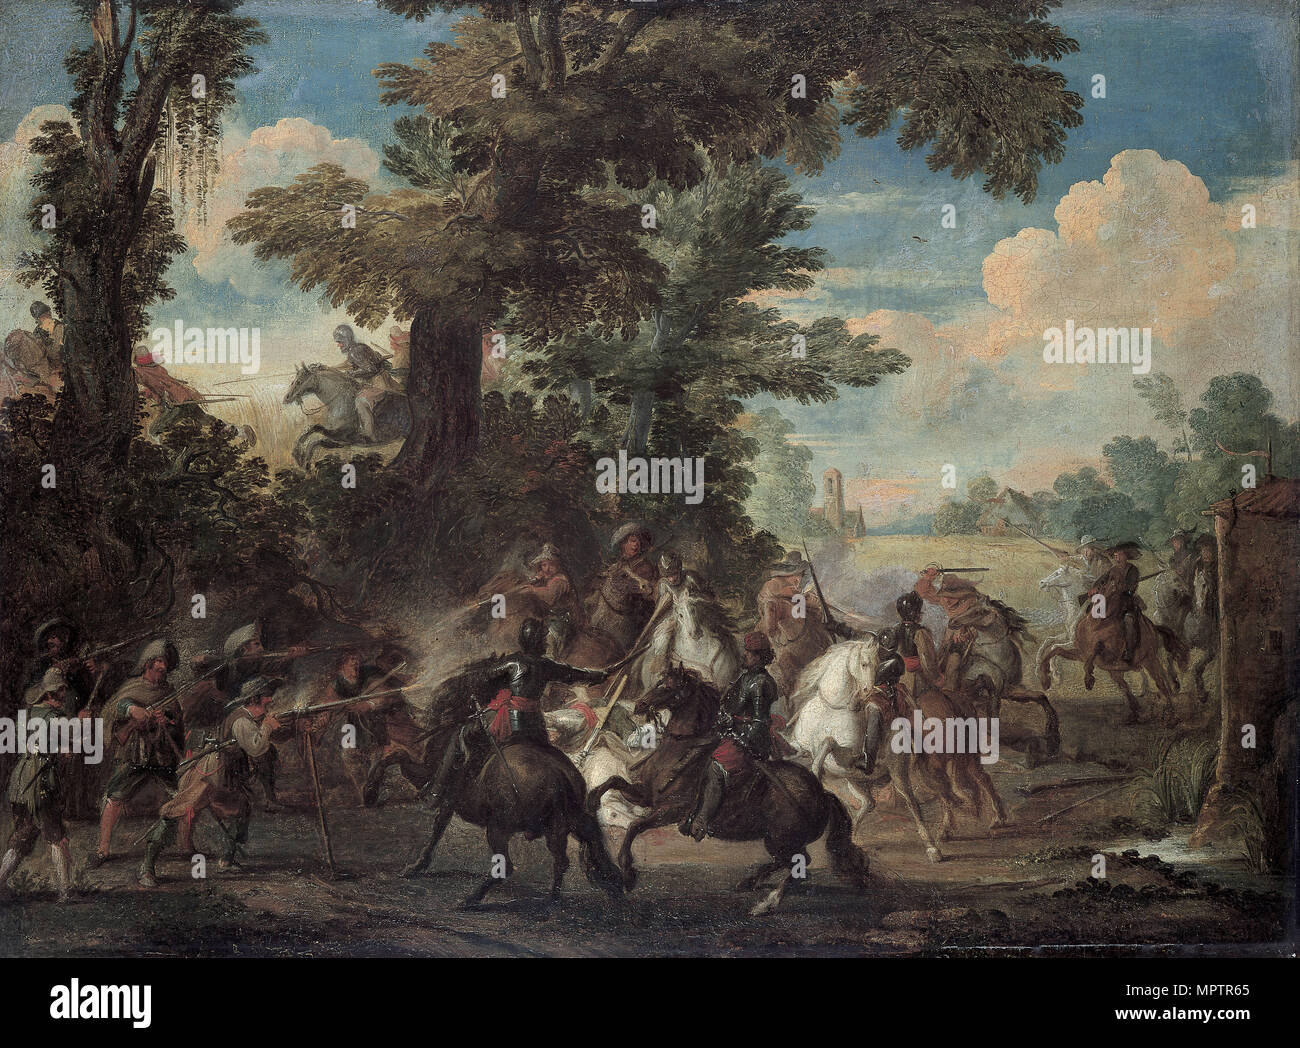 The Fight between Arquebusiers and cavalry. - Stock Image